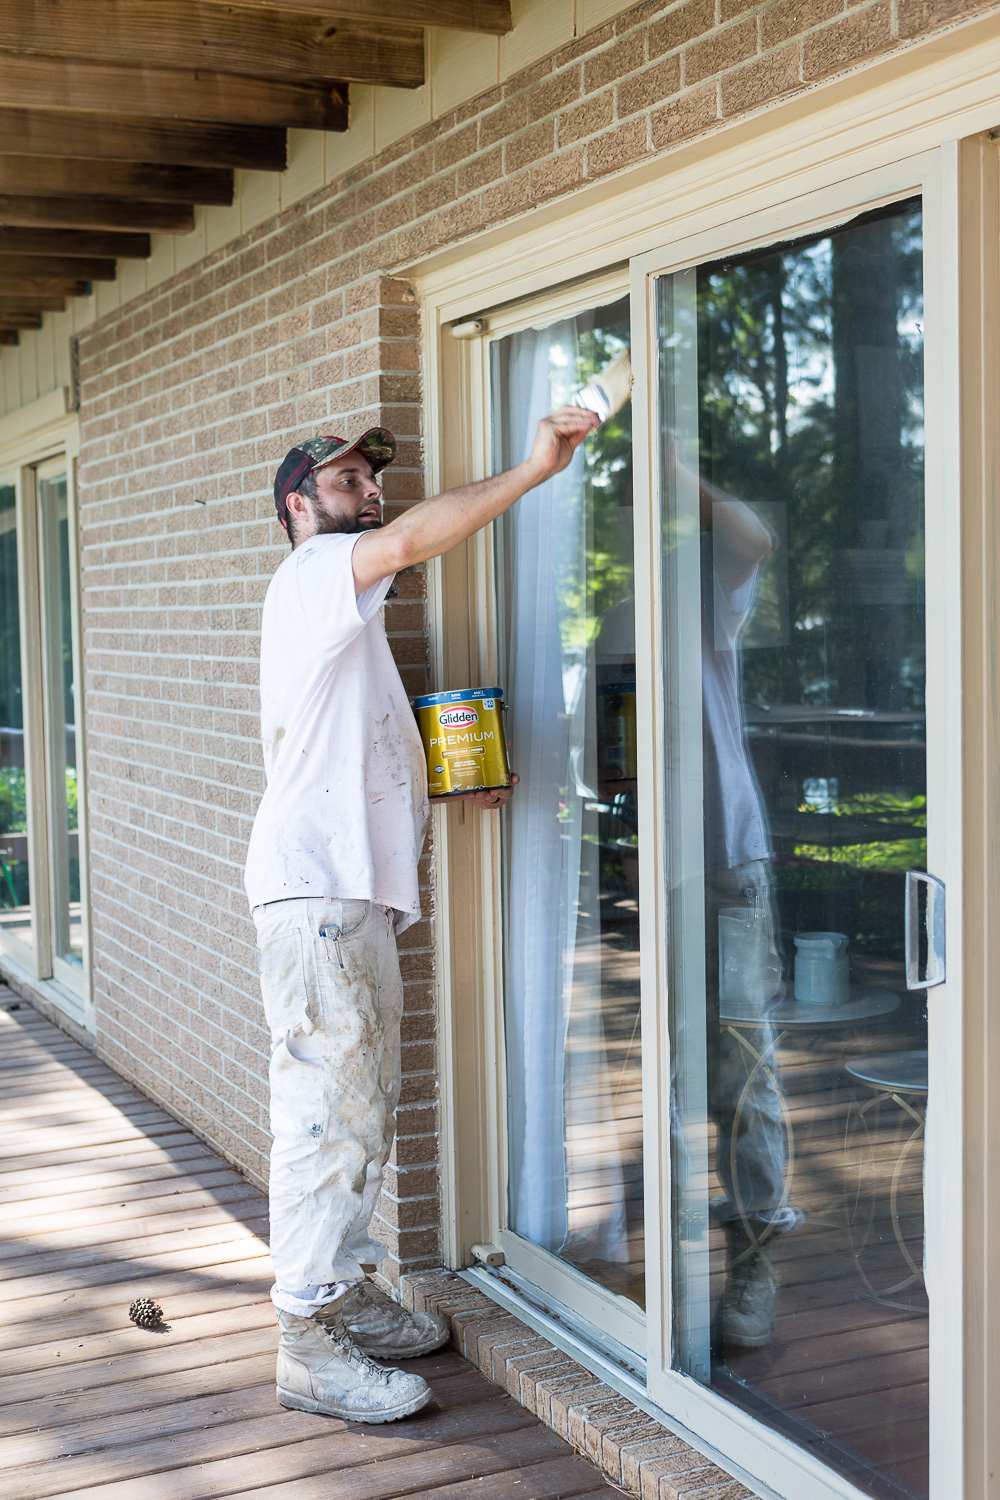 Painter painting trim with Glidden Premium paint and primer in one